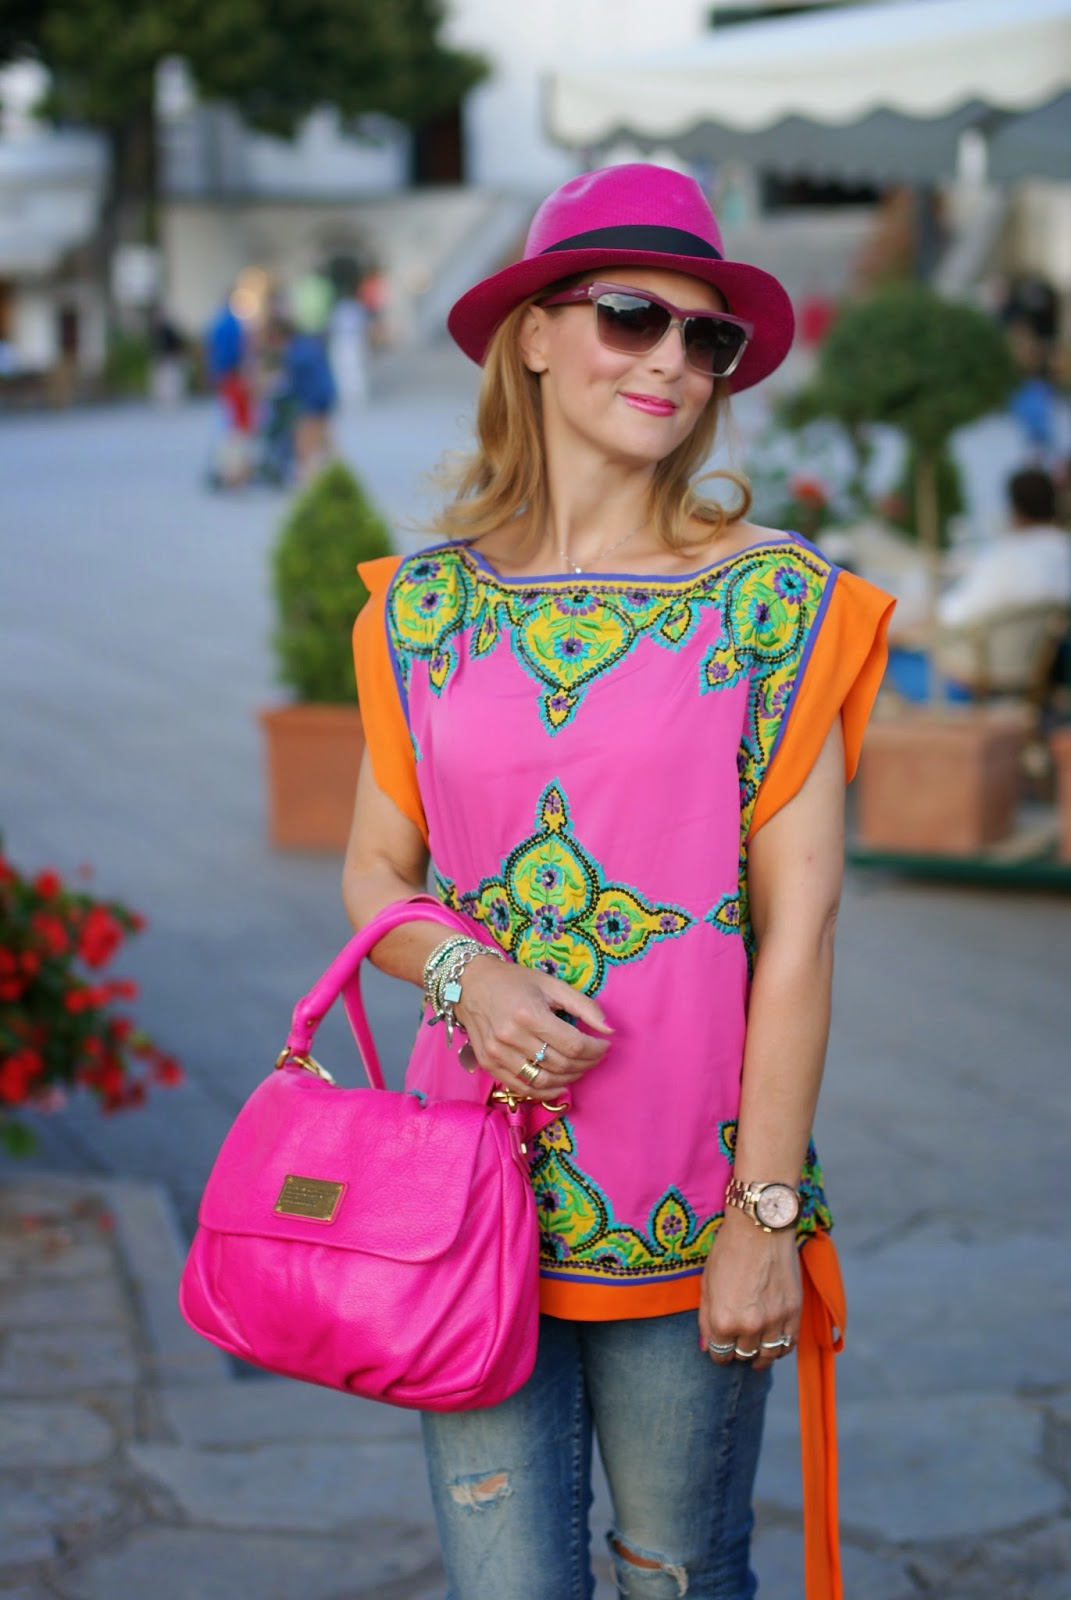 Preeti S Kapoor top, Little Ukita bag, Ravello main square, Ecua-Andino hat, Fashion and Cookies, fashion blogger